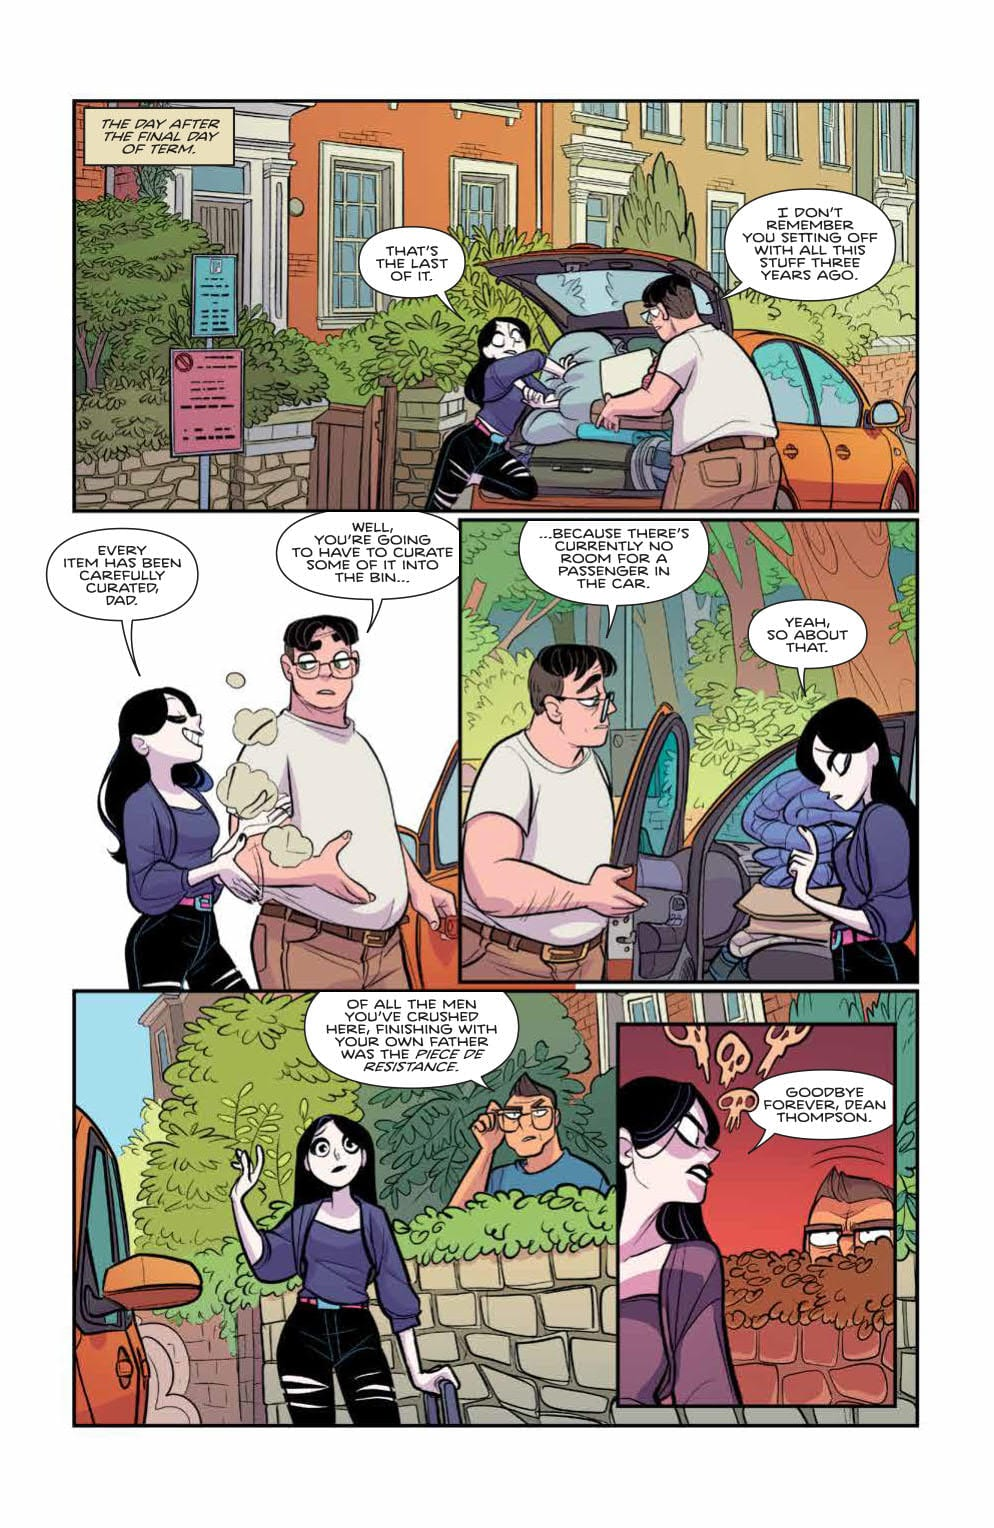 How the Series is Wrapping Up in GIANT DAYS #54 3